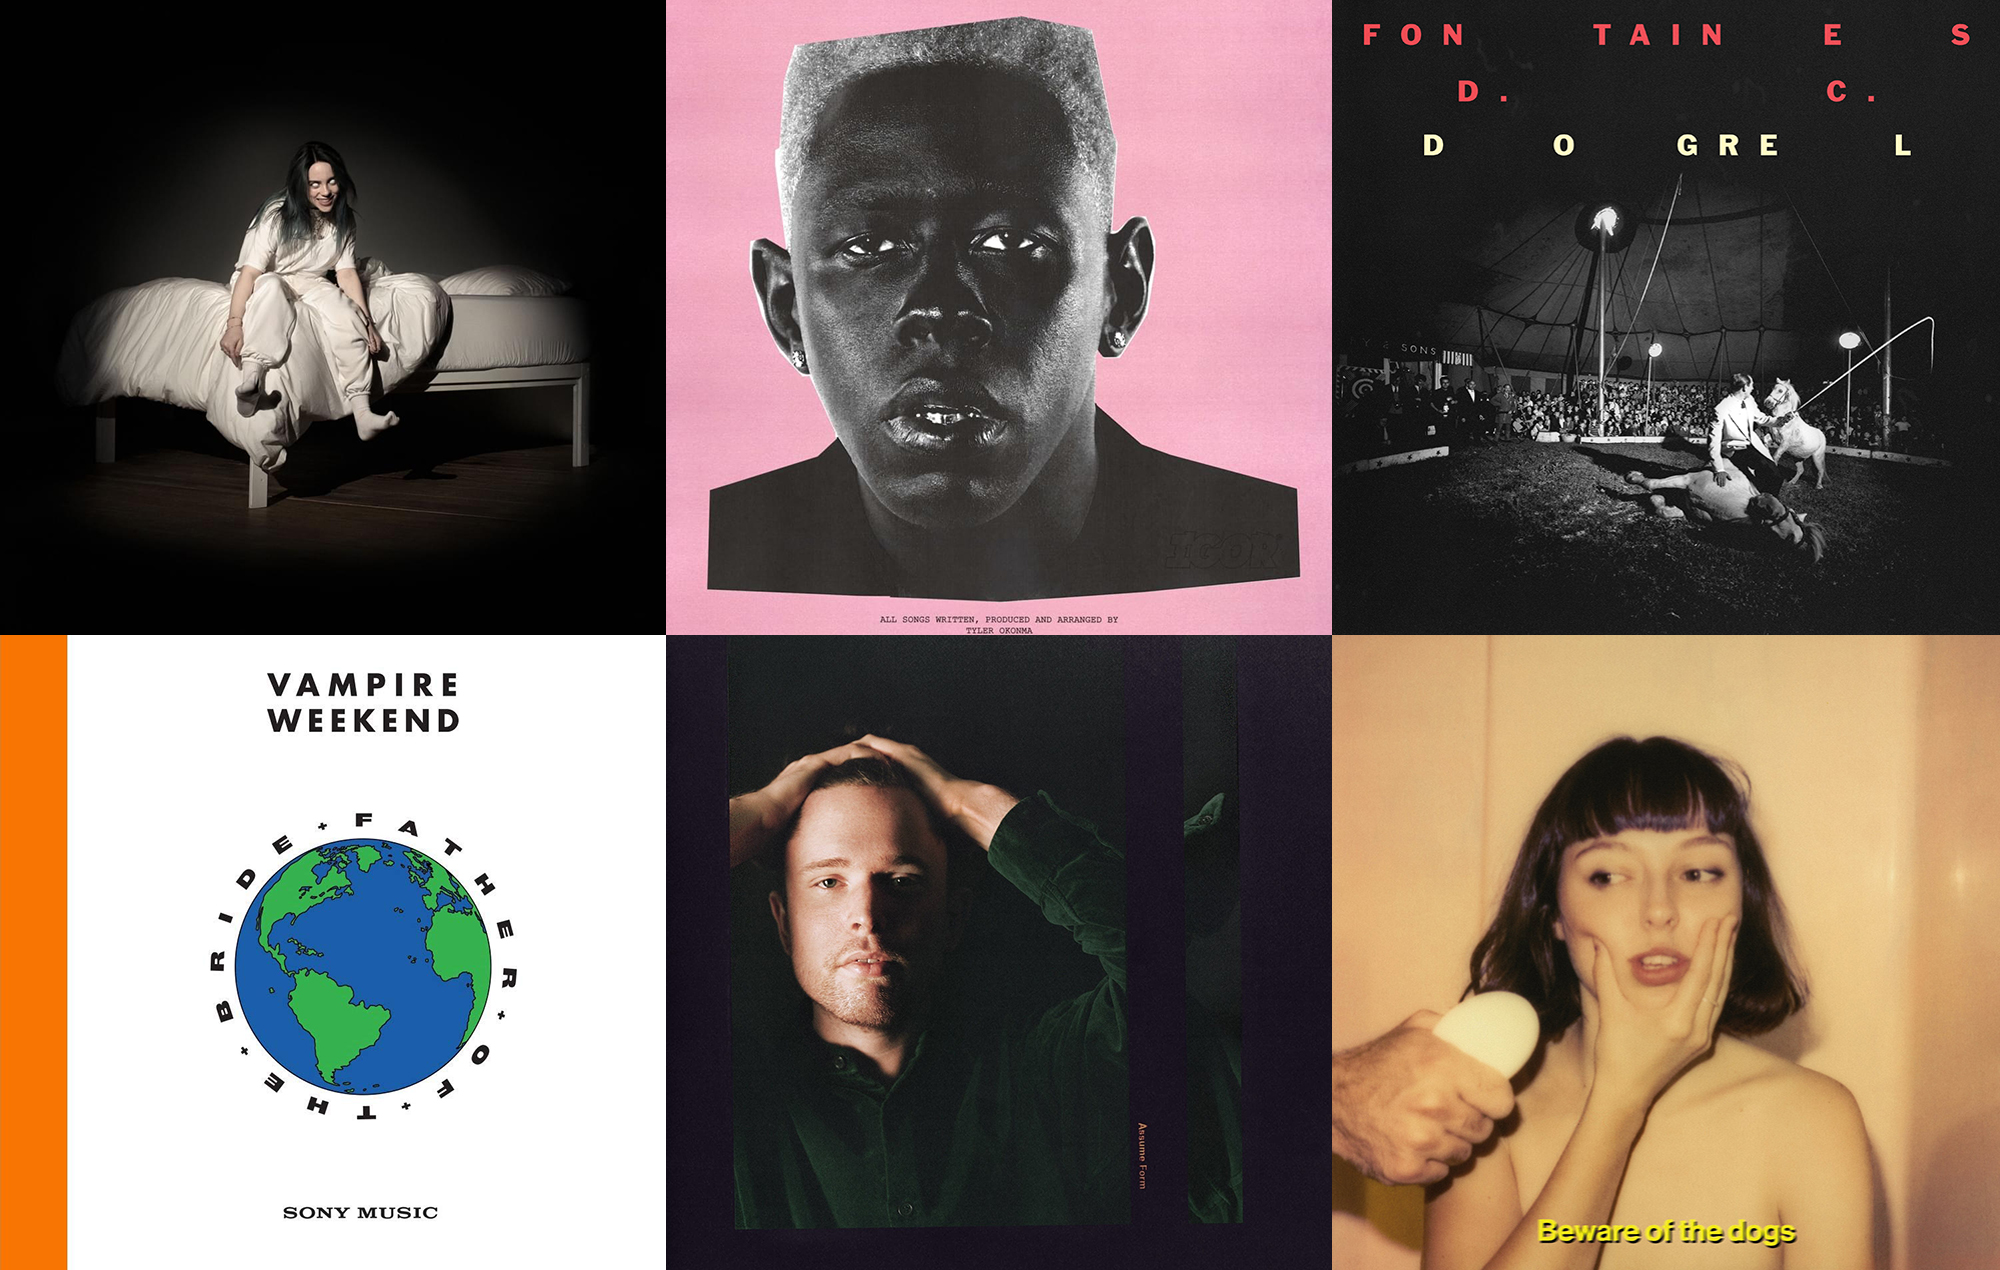 Best Album Of 2019 The best albums of 2019 (so far!)